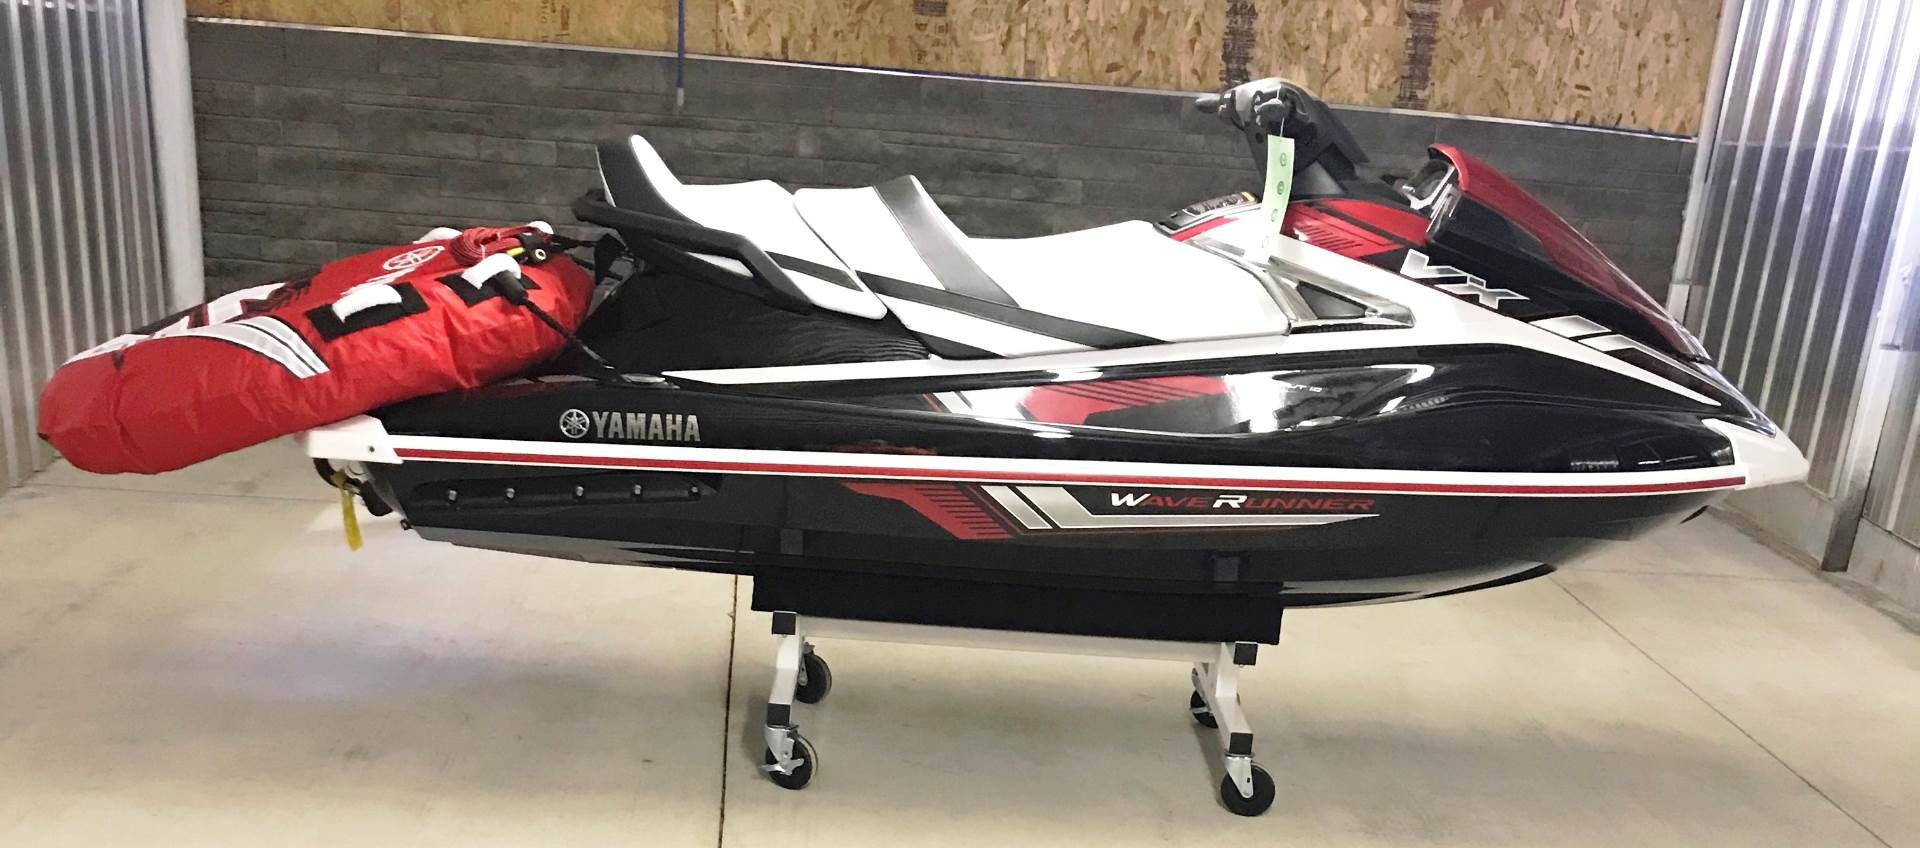 2018 Yamaha VX Limited for sale 120504